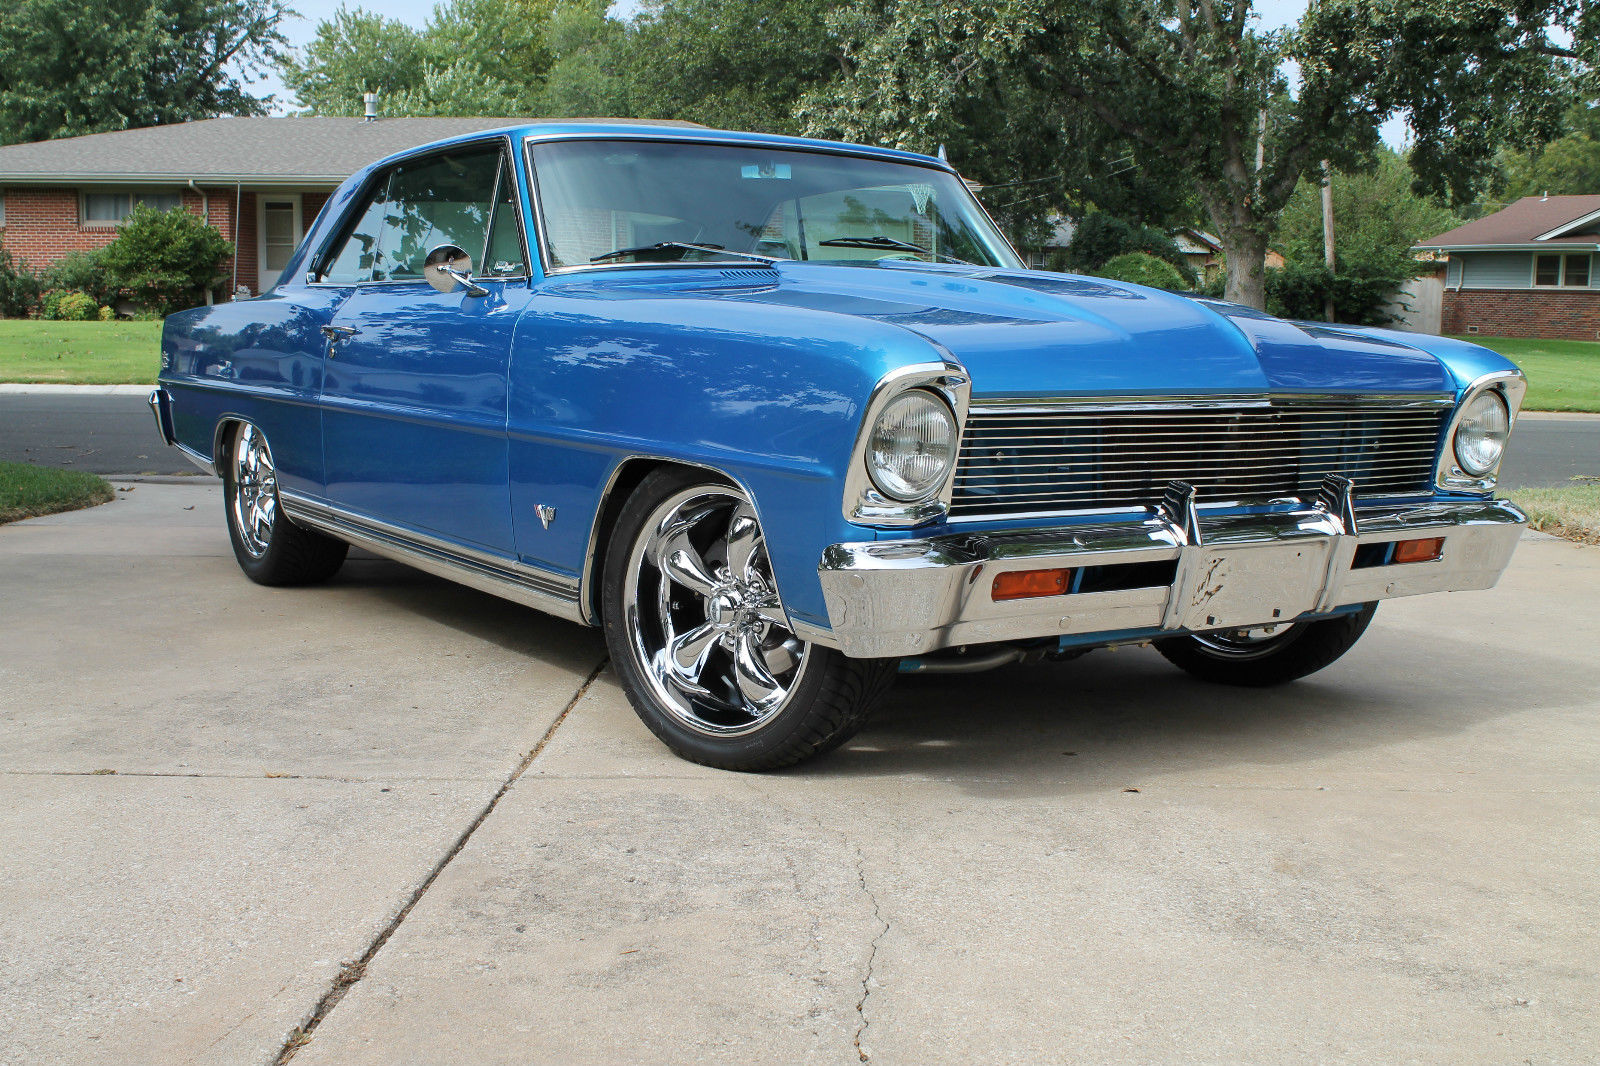 1966 chevy ii nova ss pro touring resto mod street rod hot rod tpi fuel inject for sale in. Black Bedroom Furniture Sets. Home Design Ideas